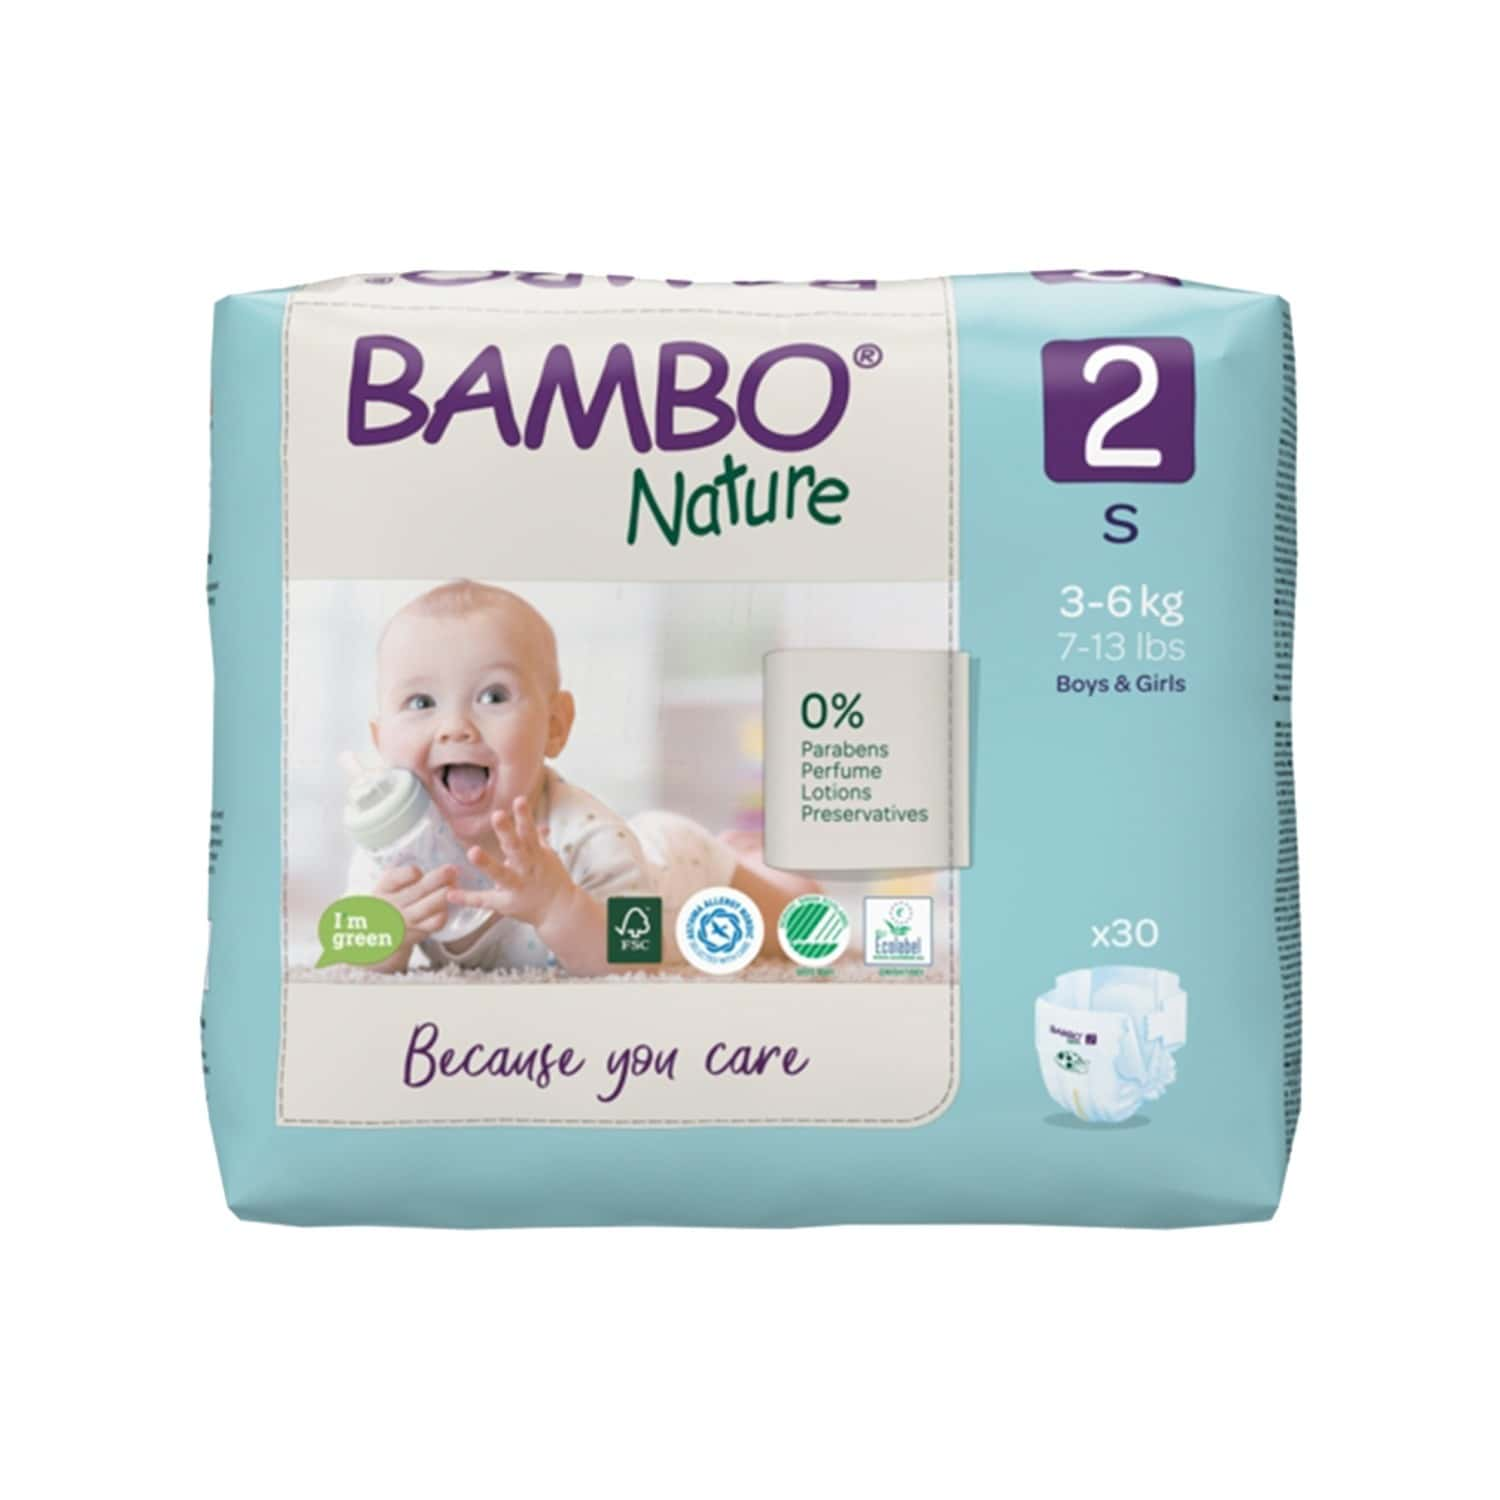 Bambo Nature Small Size Diaper With Wetness Indicator - 30 Diapers